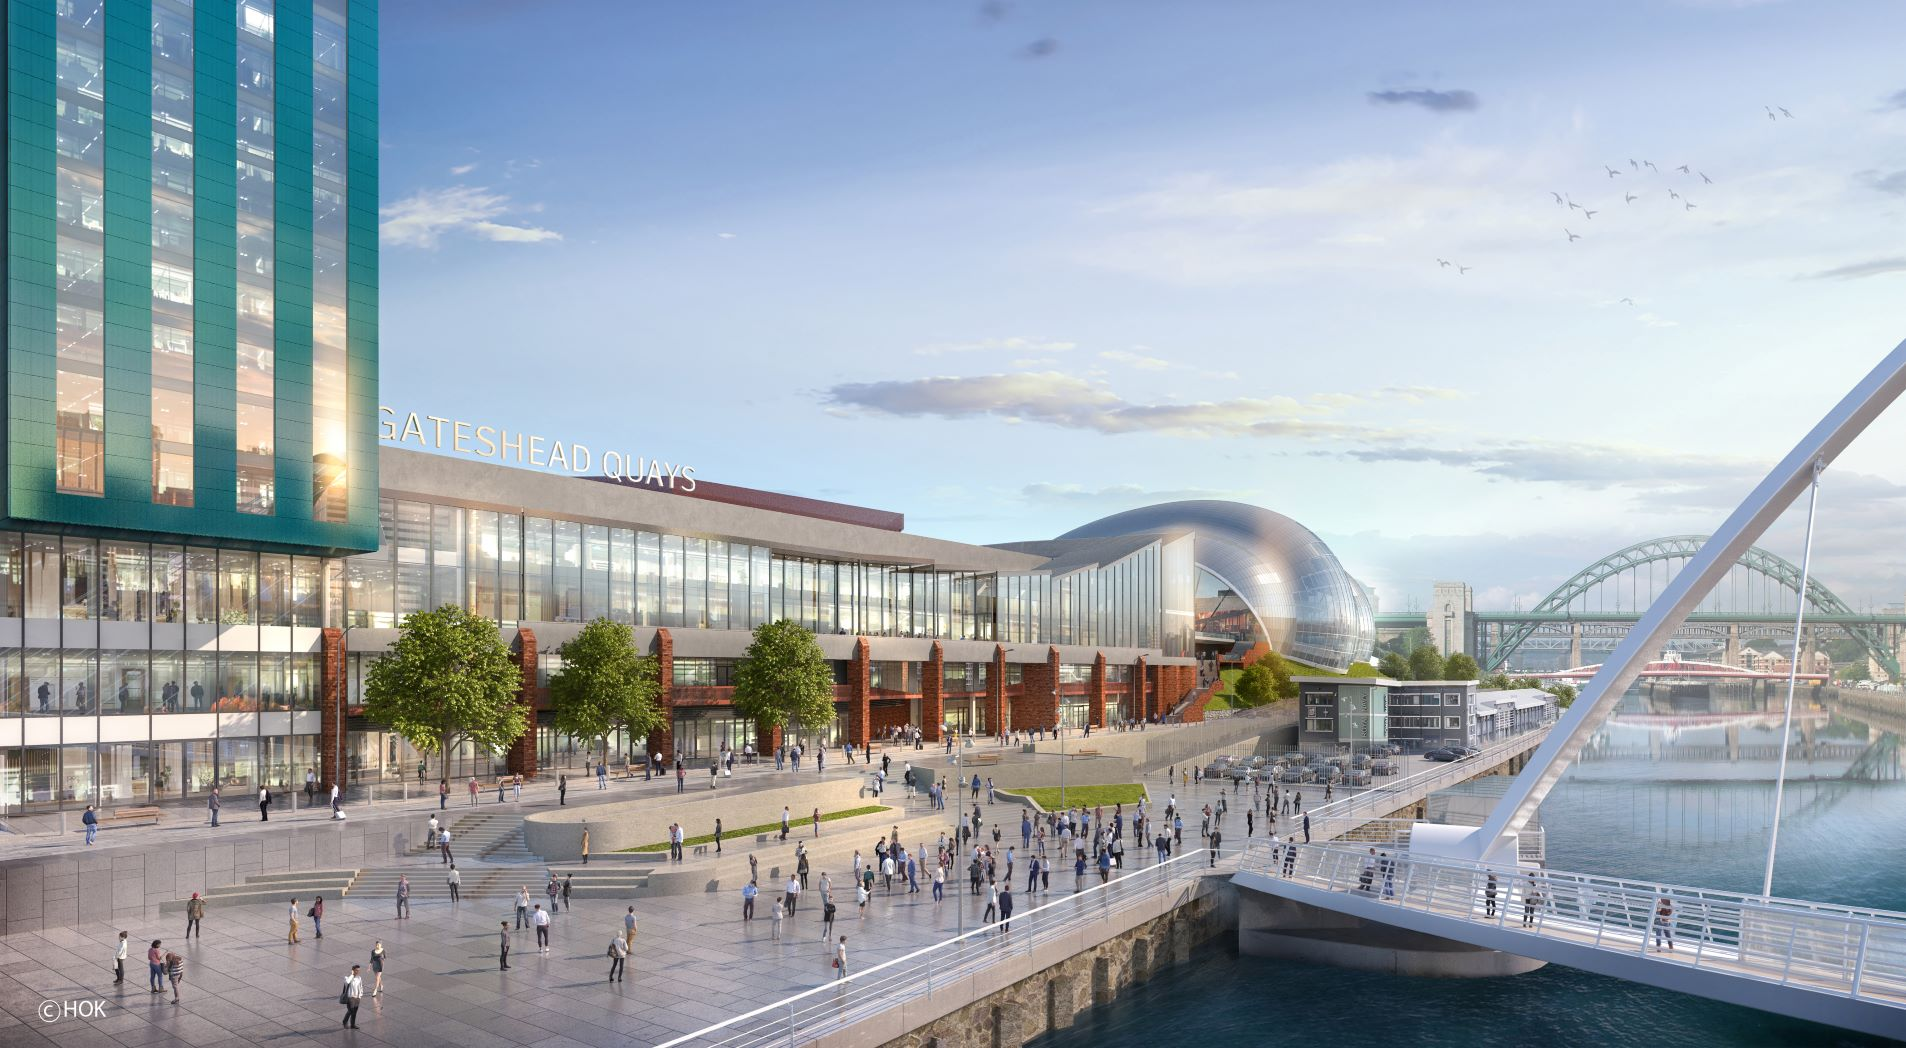 Planning submitted for Gateshead Quays arena-led s header internal